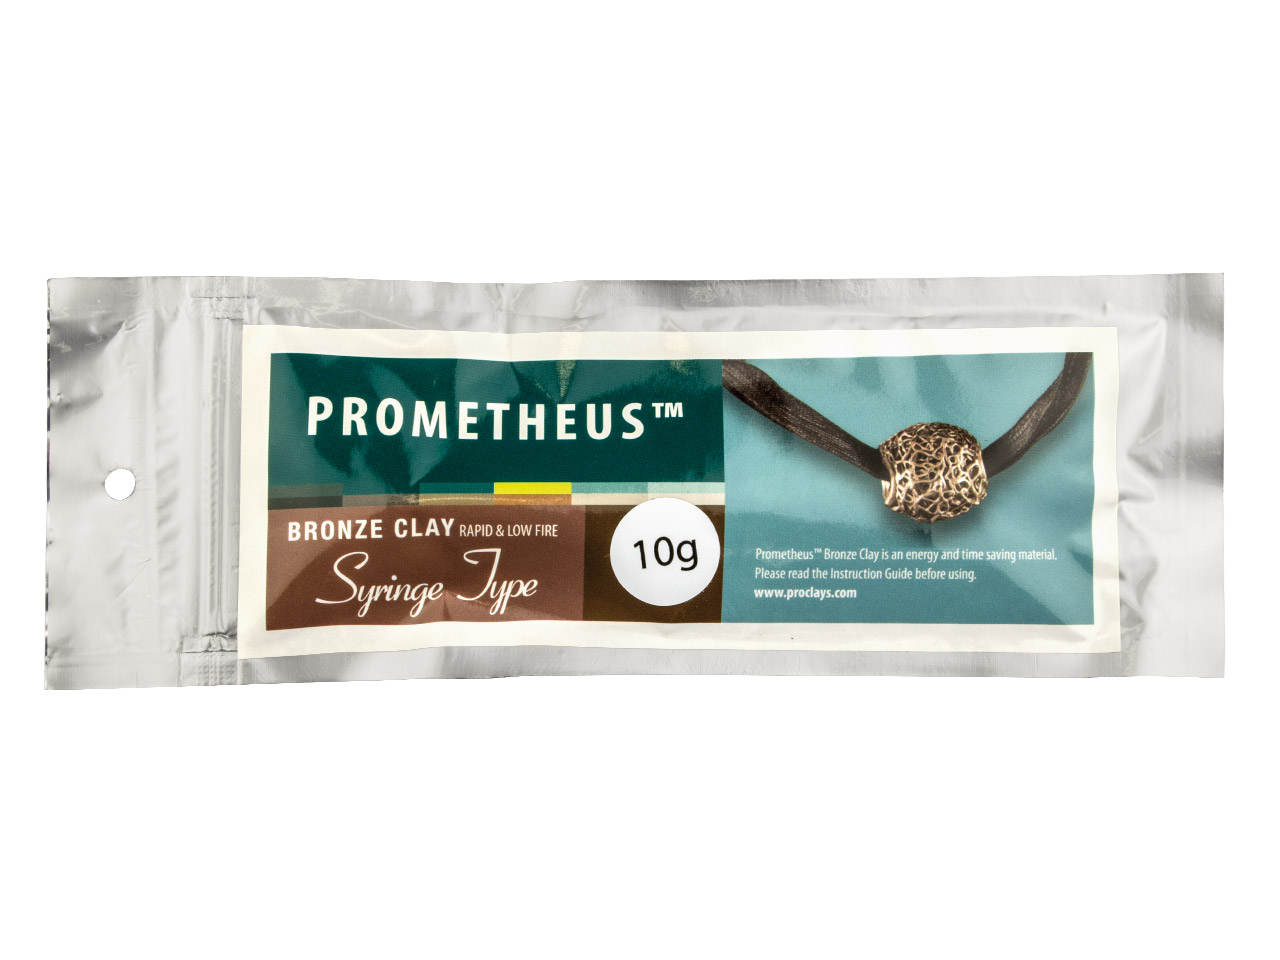 Prometheus Bronze Clay Syringe 10g With 3 Tips